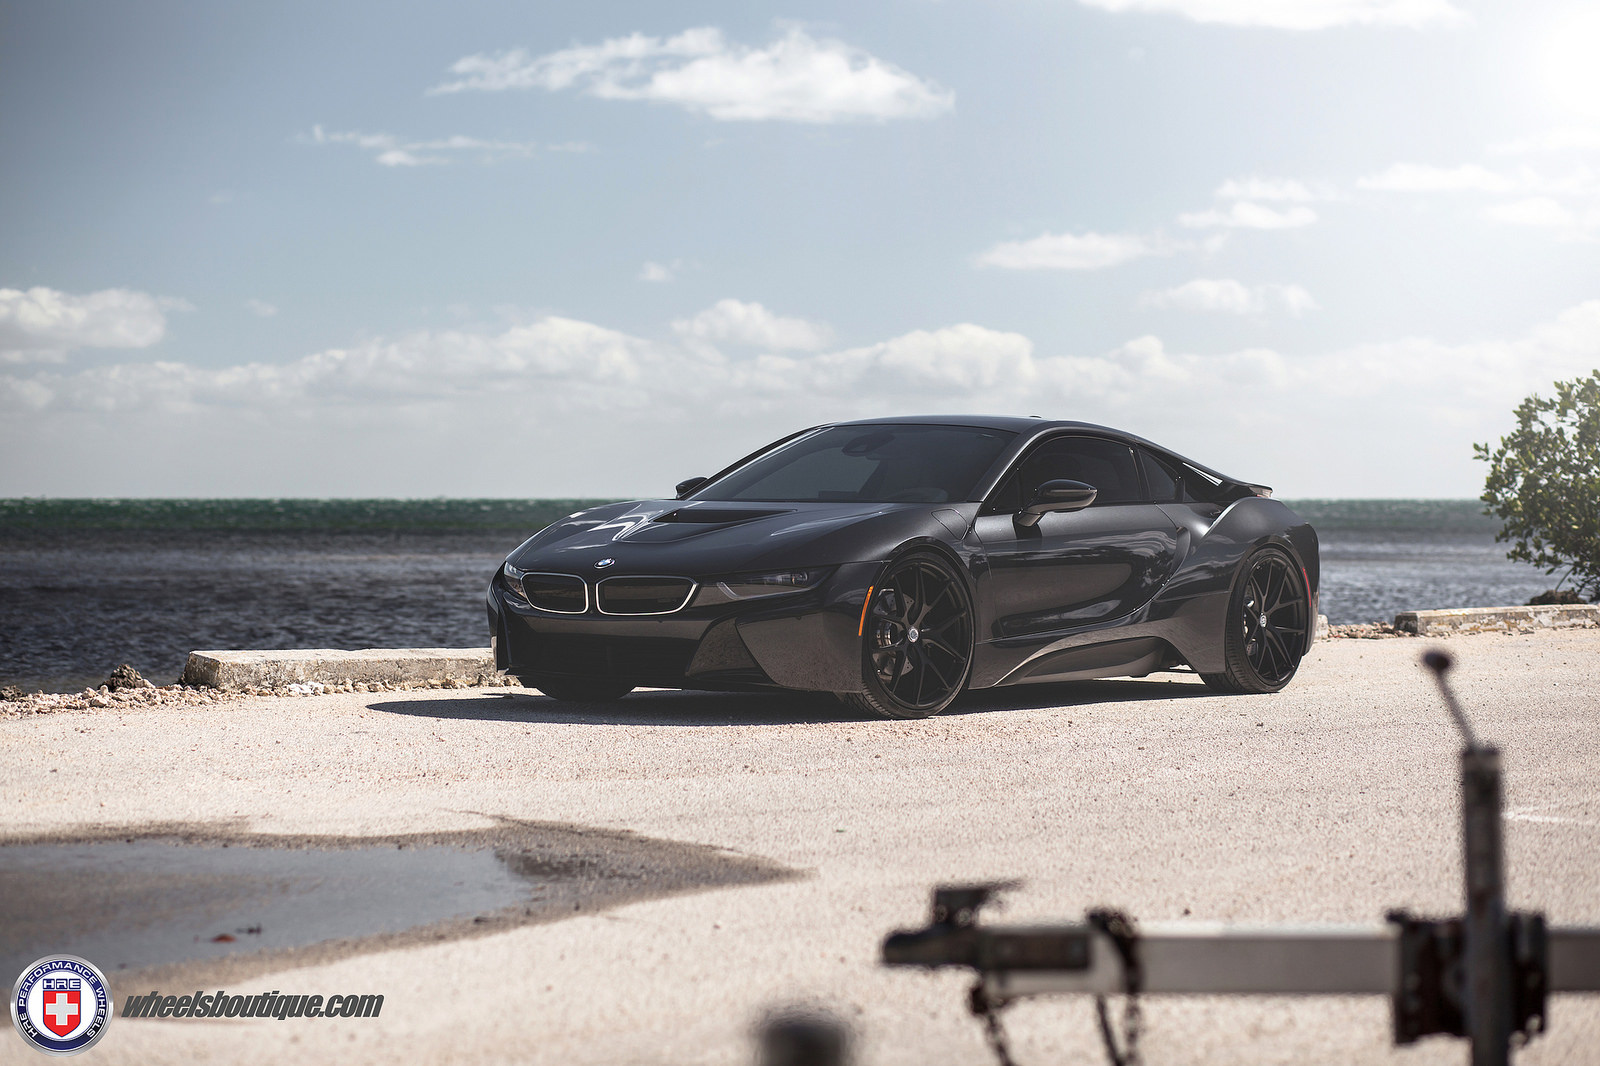 bmw-i8-on-hre-wheels-9